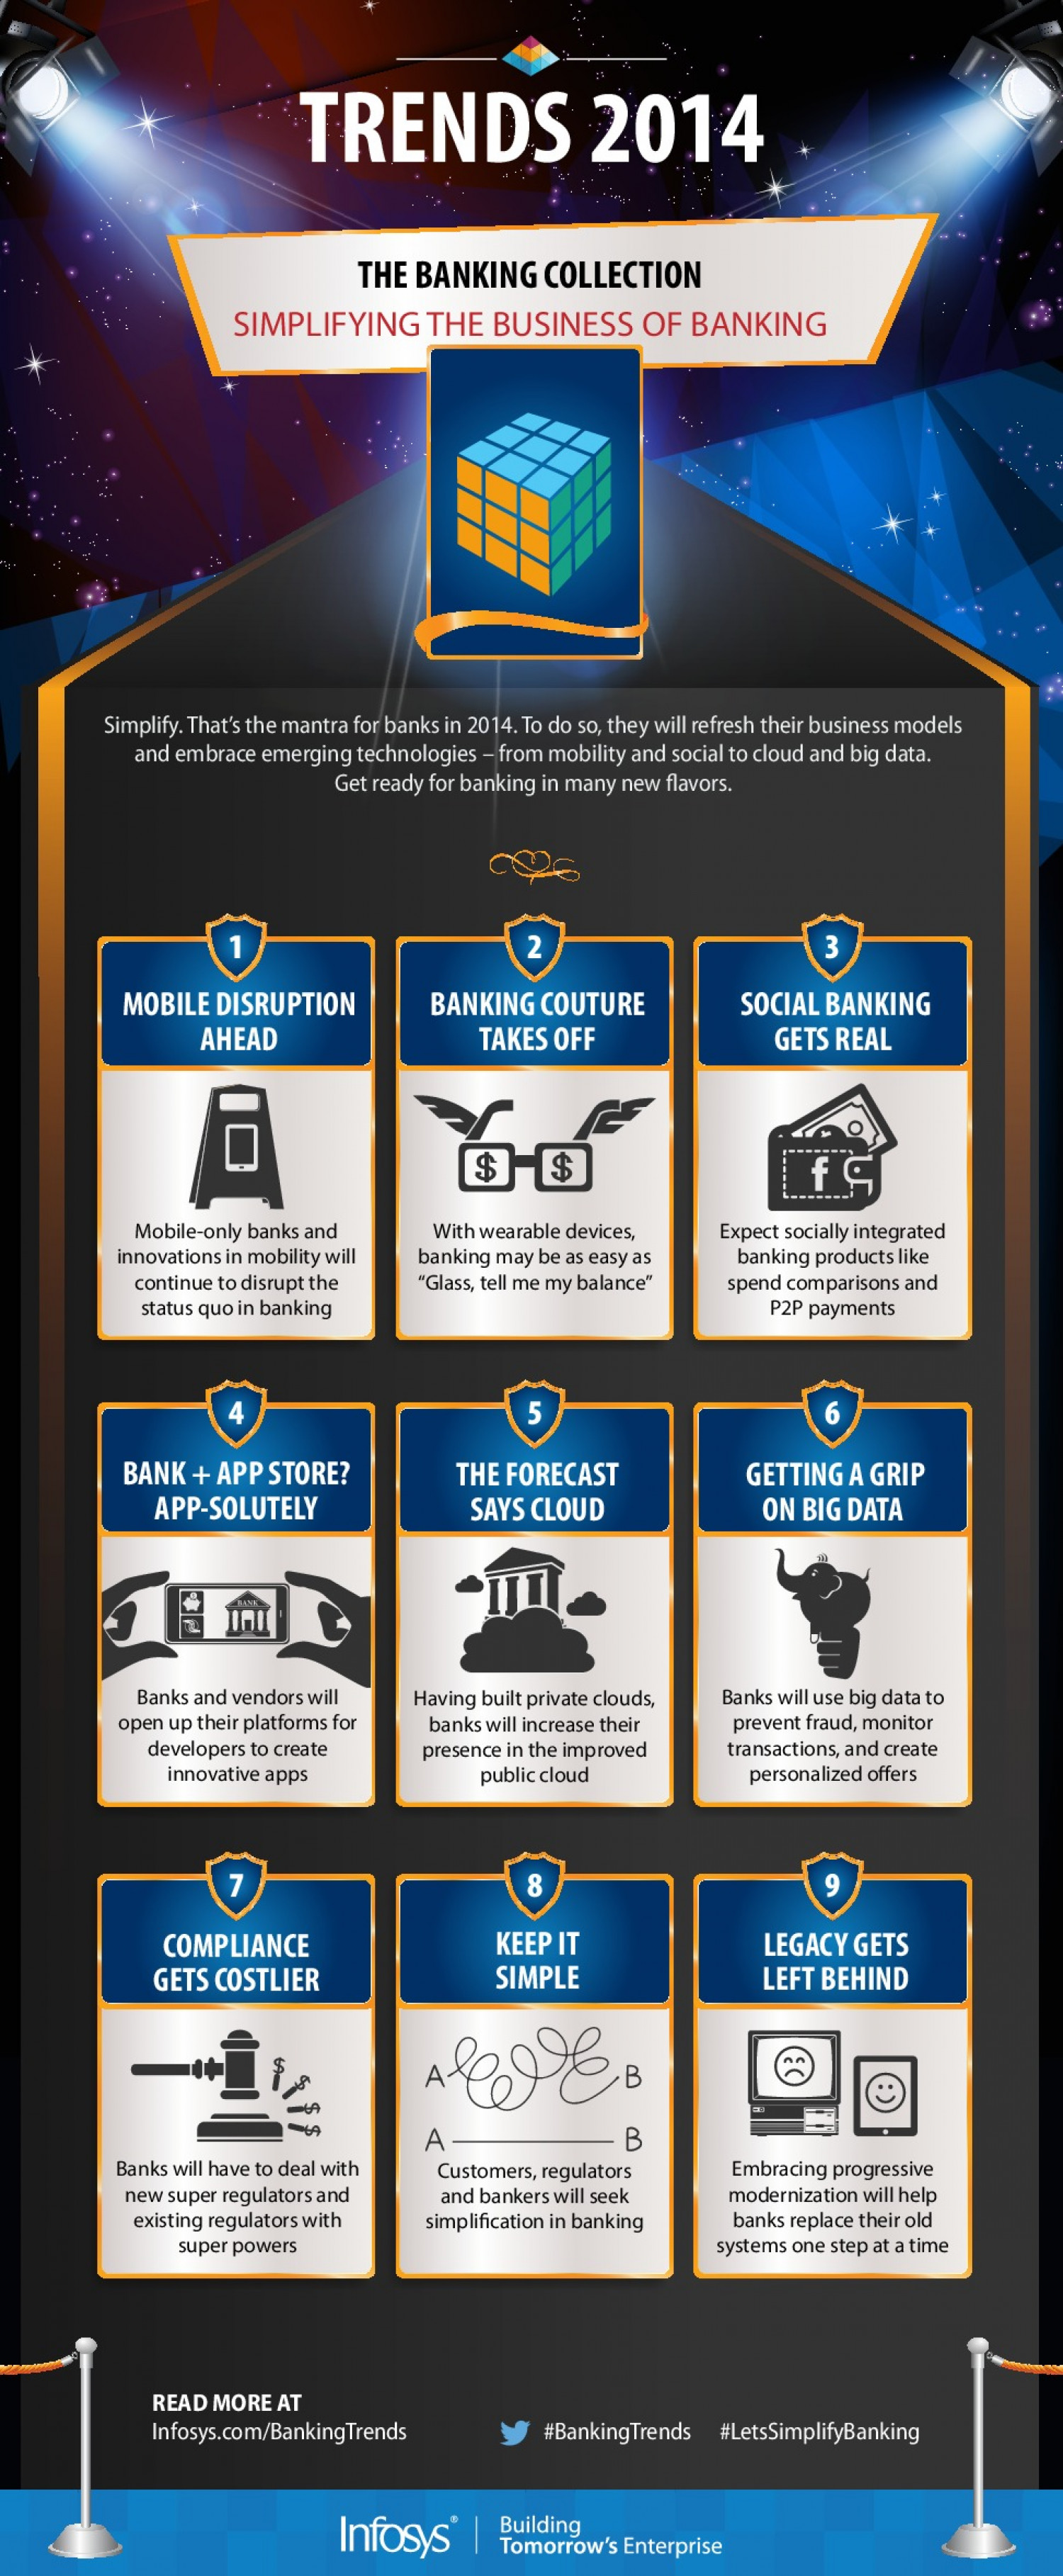 9 Banking Trends For 2014 Infographic